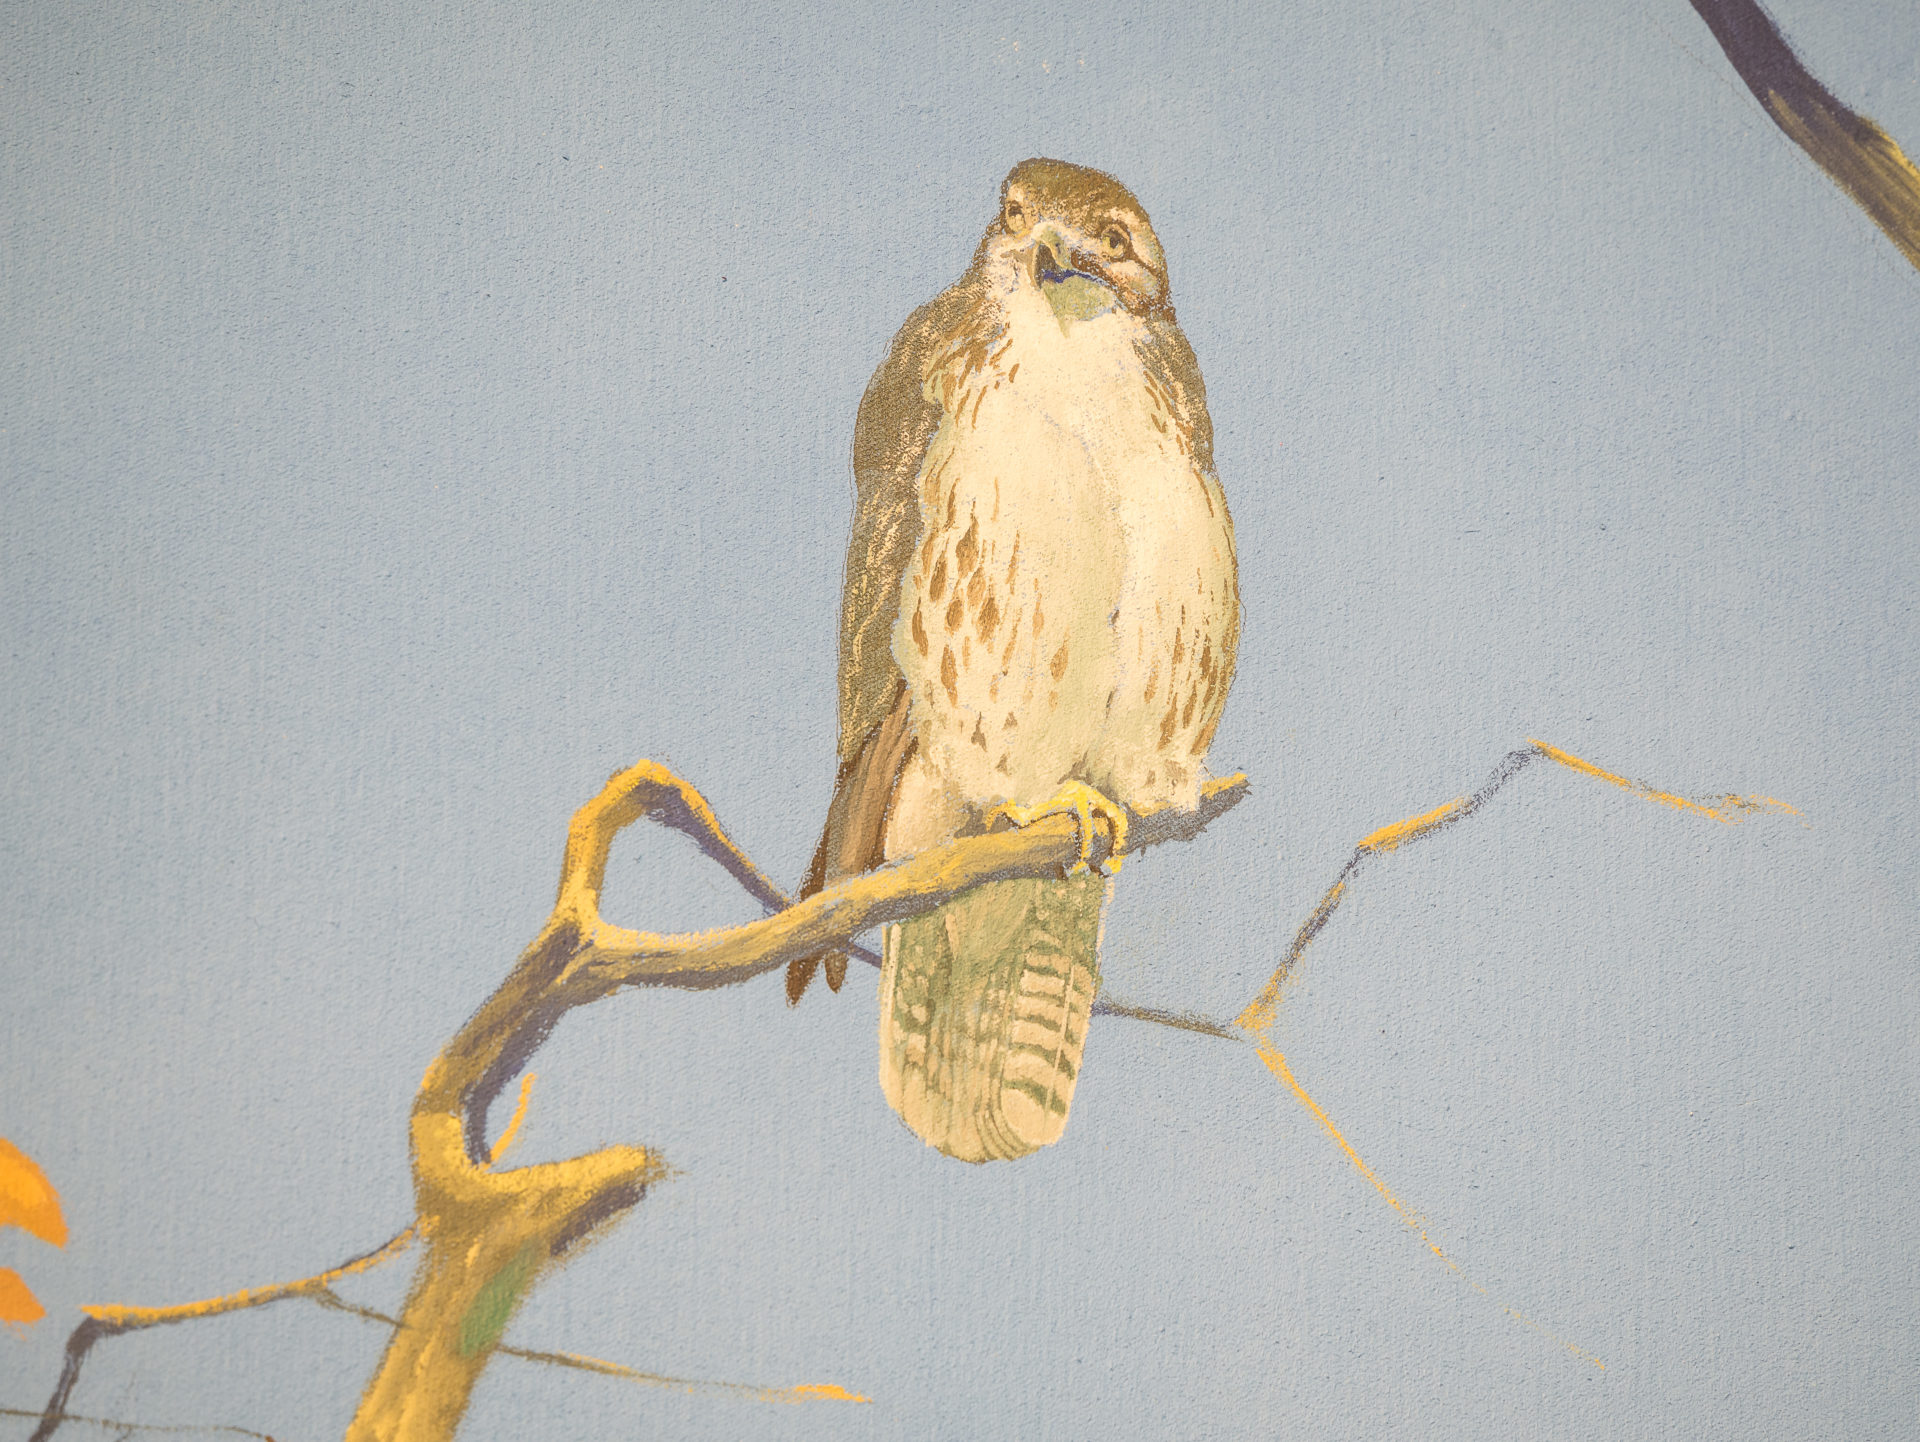 red-tailed hawk perched on a limb